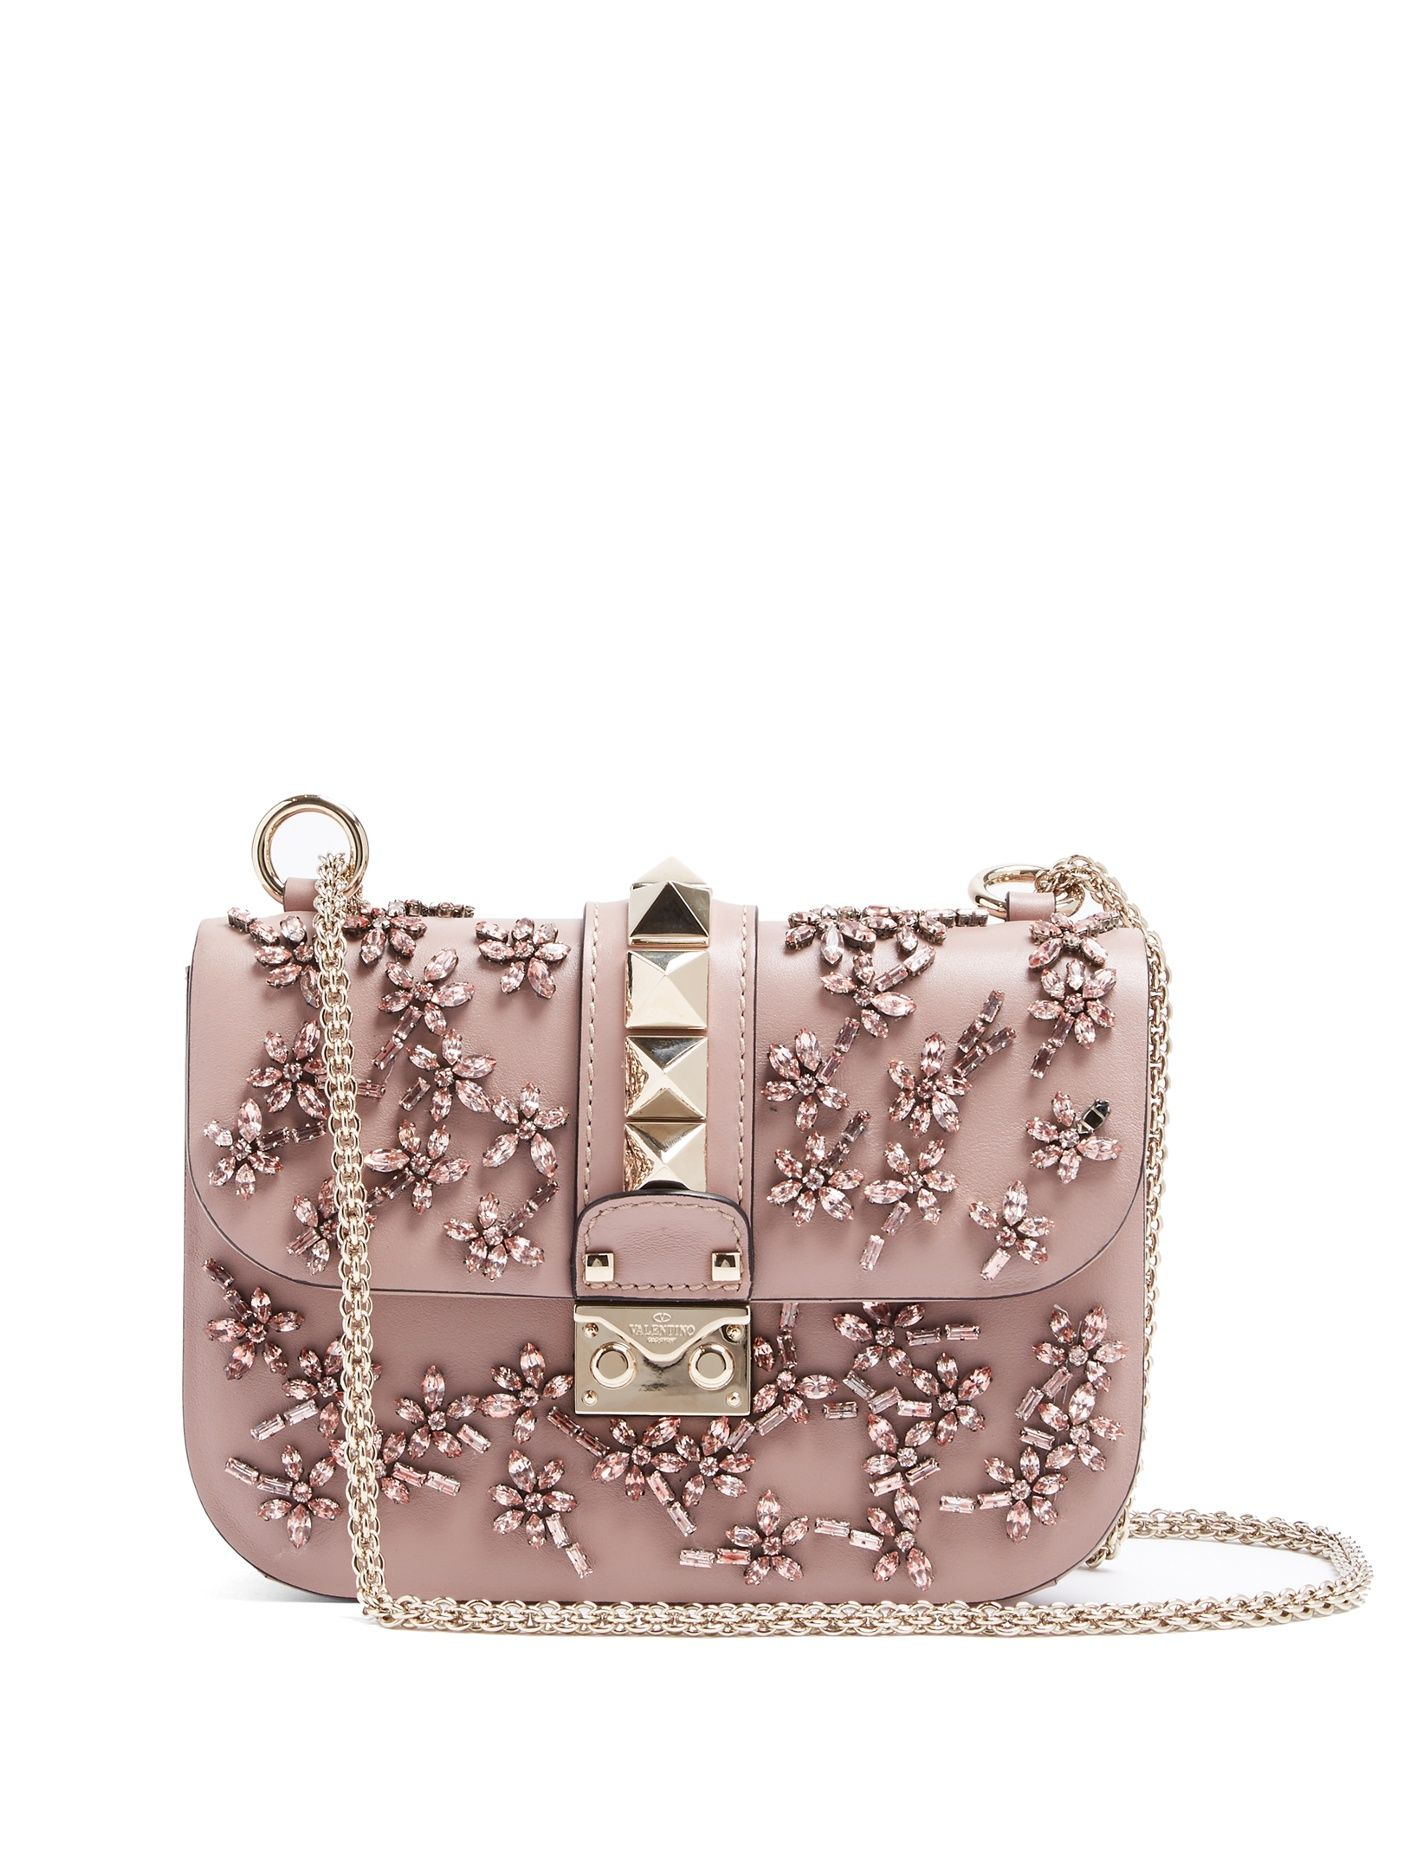 0e5a8a5e4e7 Click here to buy Valentino Lock small embellished leather shoulder bag at  MATCHESFASHION.COM